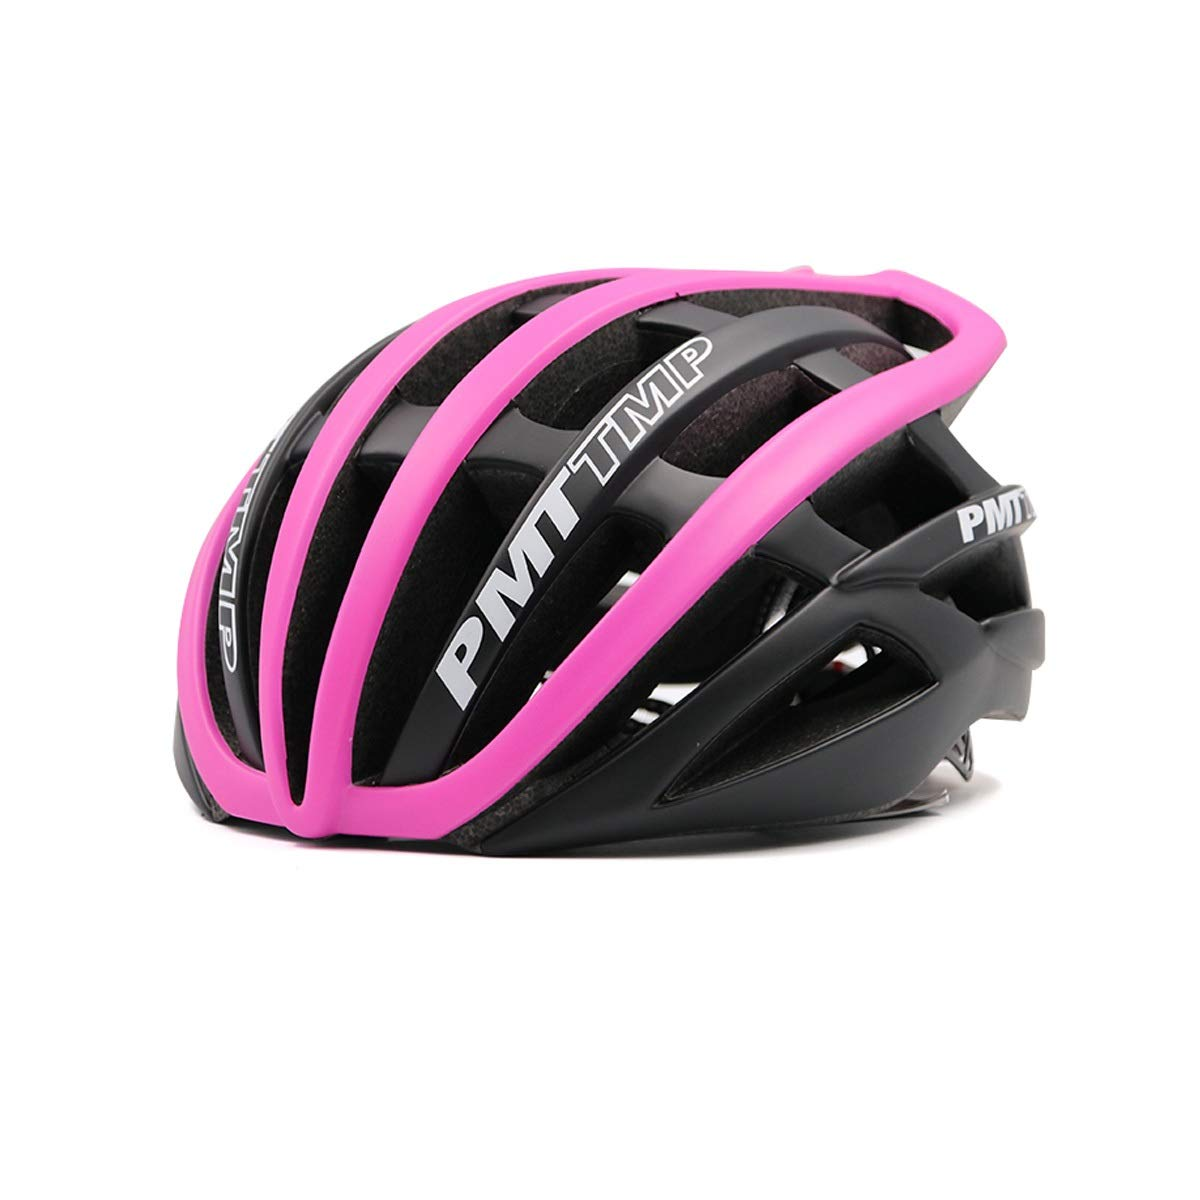 Muziwenju Helmet with in-Molded Reinforcing Skeleton for Added Protection - Adult Size, Comfortable, Lightweight, Breathable,Multiple Colors & Sizes Latest Style, Practical